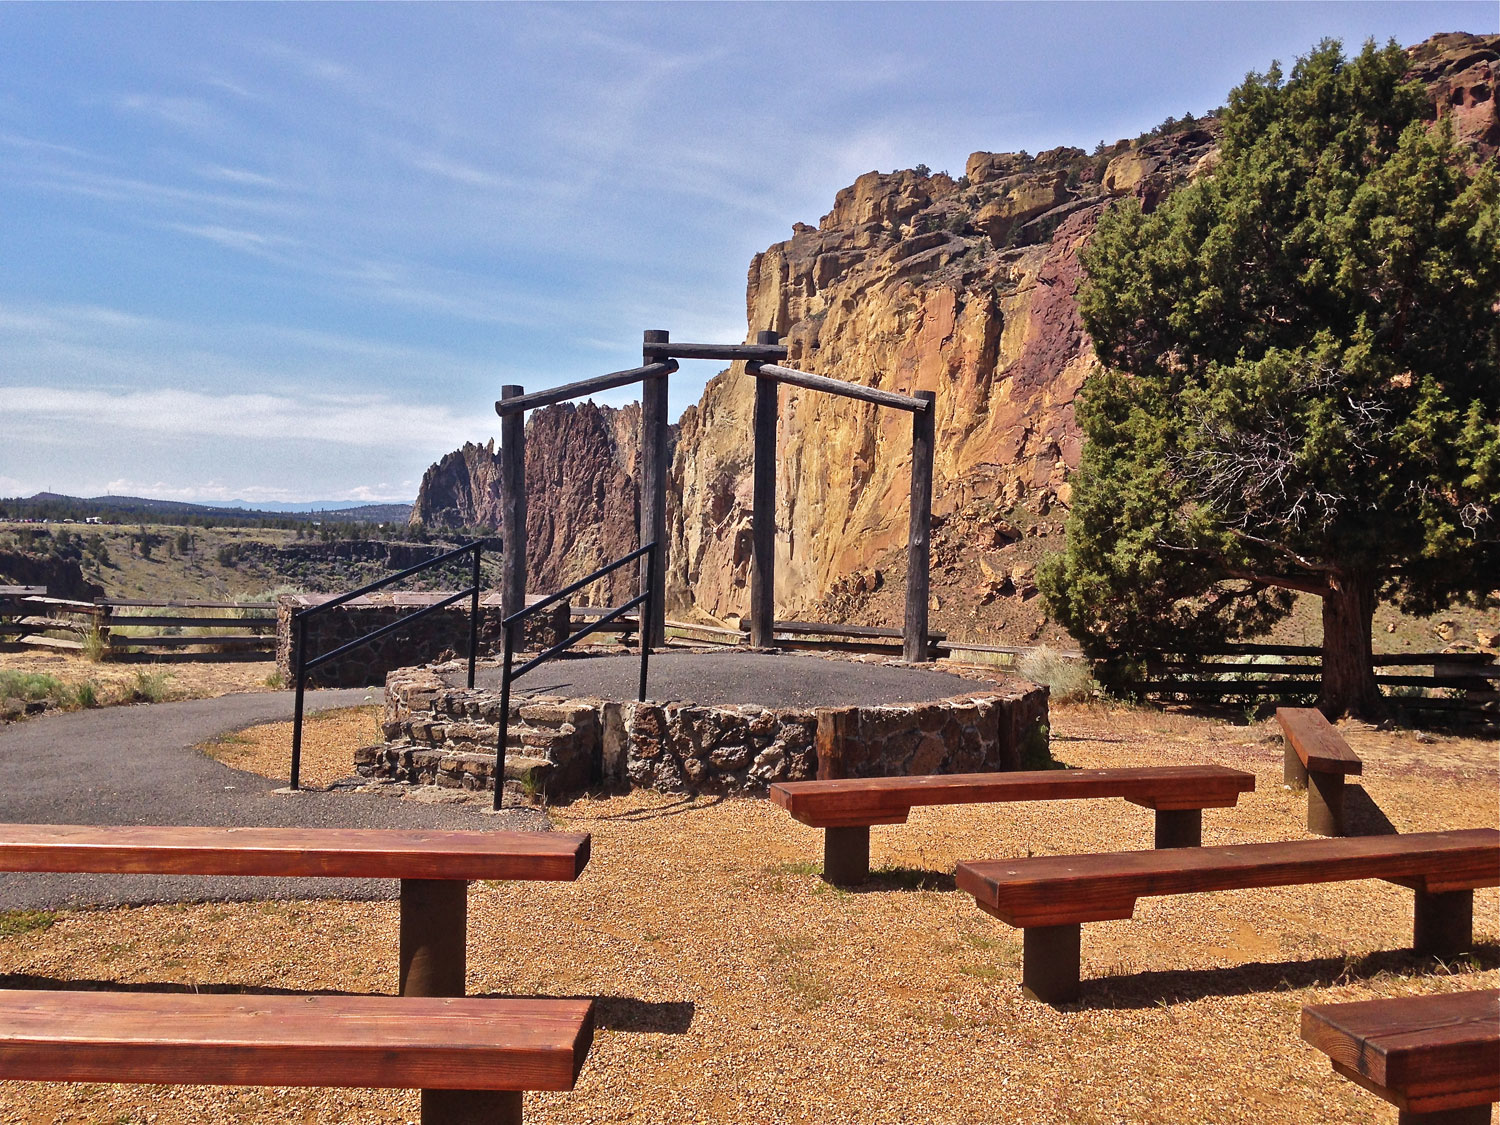 amphitheather at the Northern Point at Smith Rock State Park